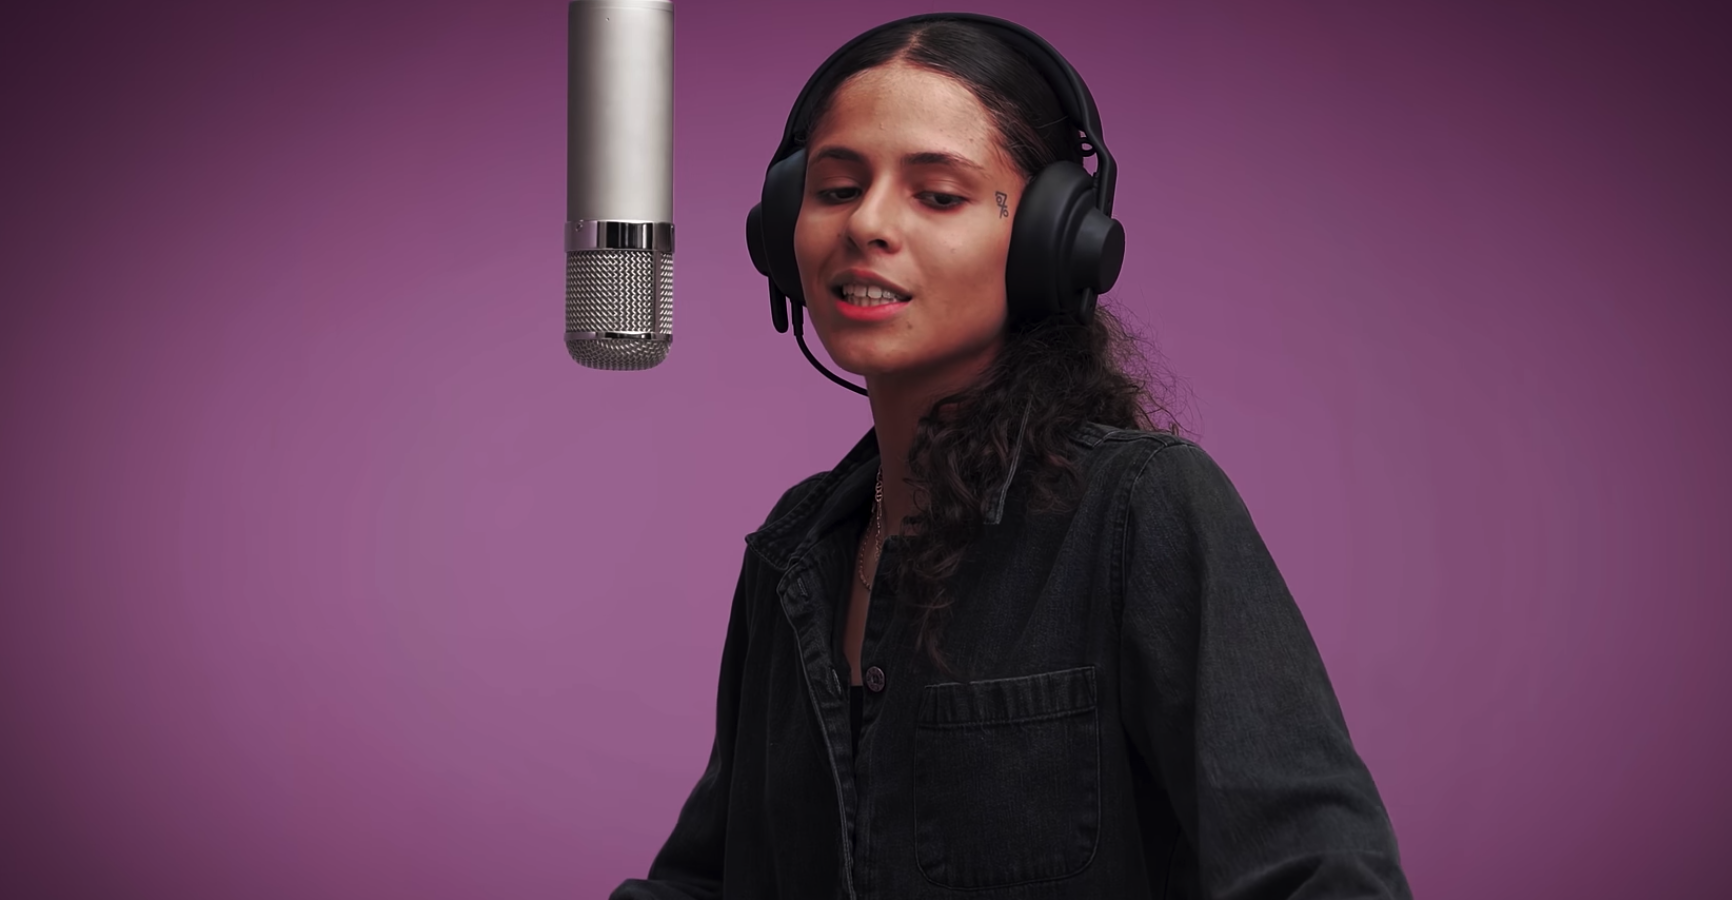 Video: 070 Shake - I Laugh When I'm With Friends But Sad When I'm Alone (Colors)